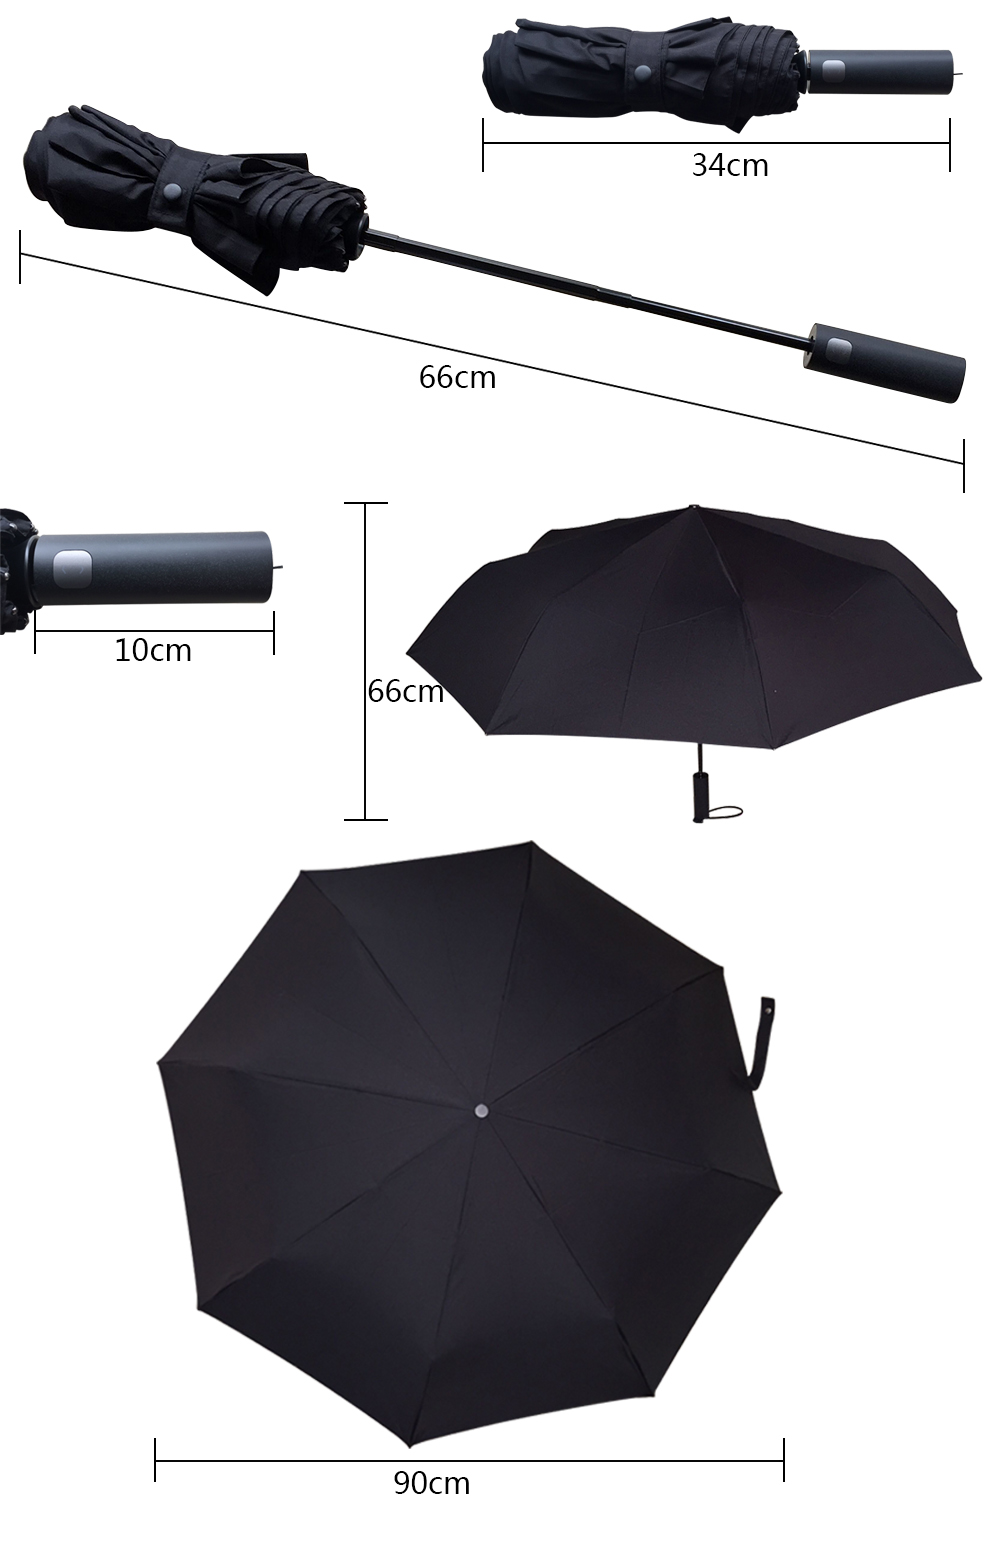 036df384f345 Xiaomi Mijia Automatic Sunny Rainy Umbrella Aluminum Windproof Waterproof  Uv Umbrella - Buy Xiaomi Umbrella,Umbrella,Uv Umbrella Product on ...